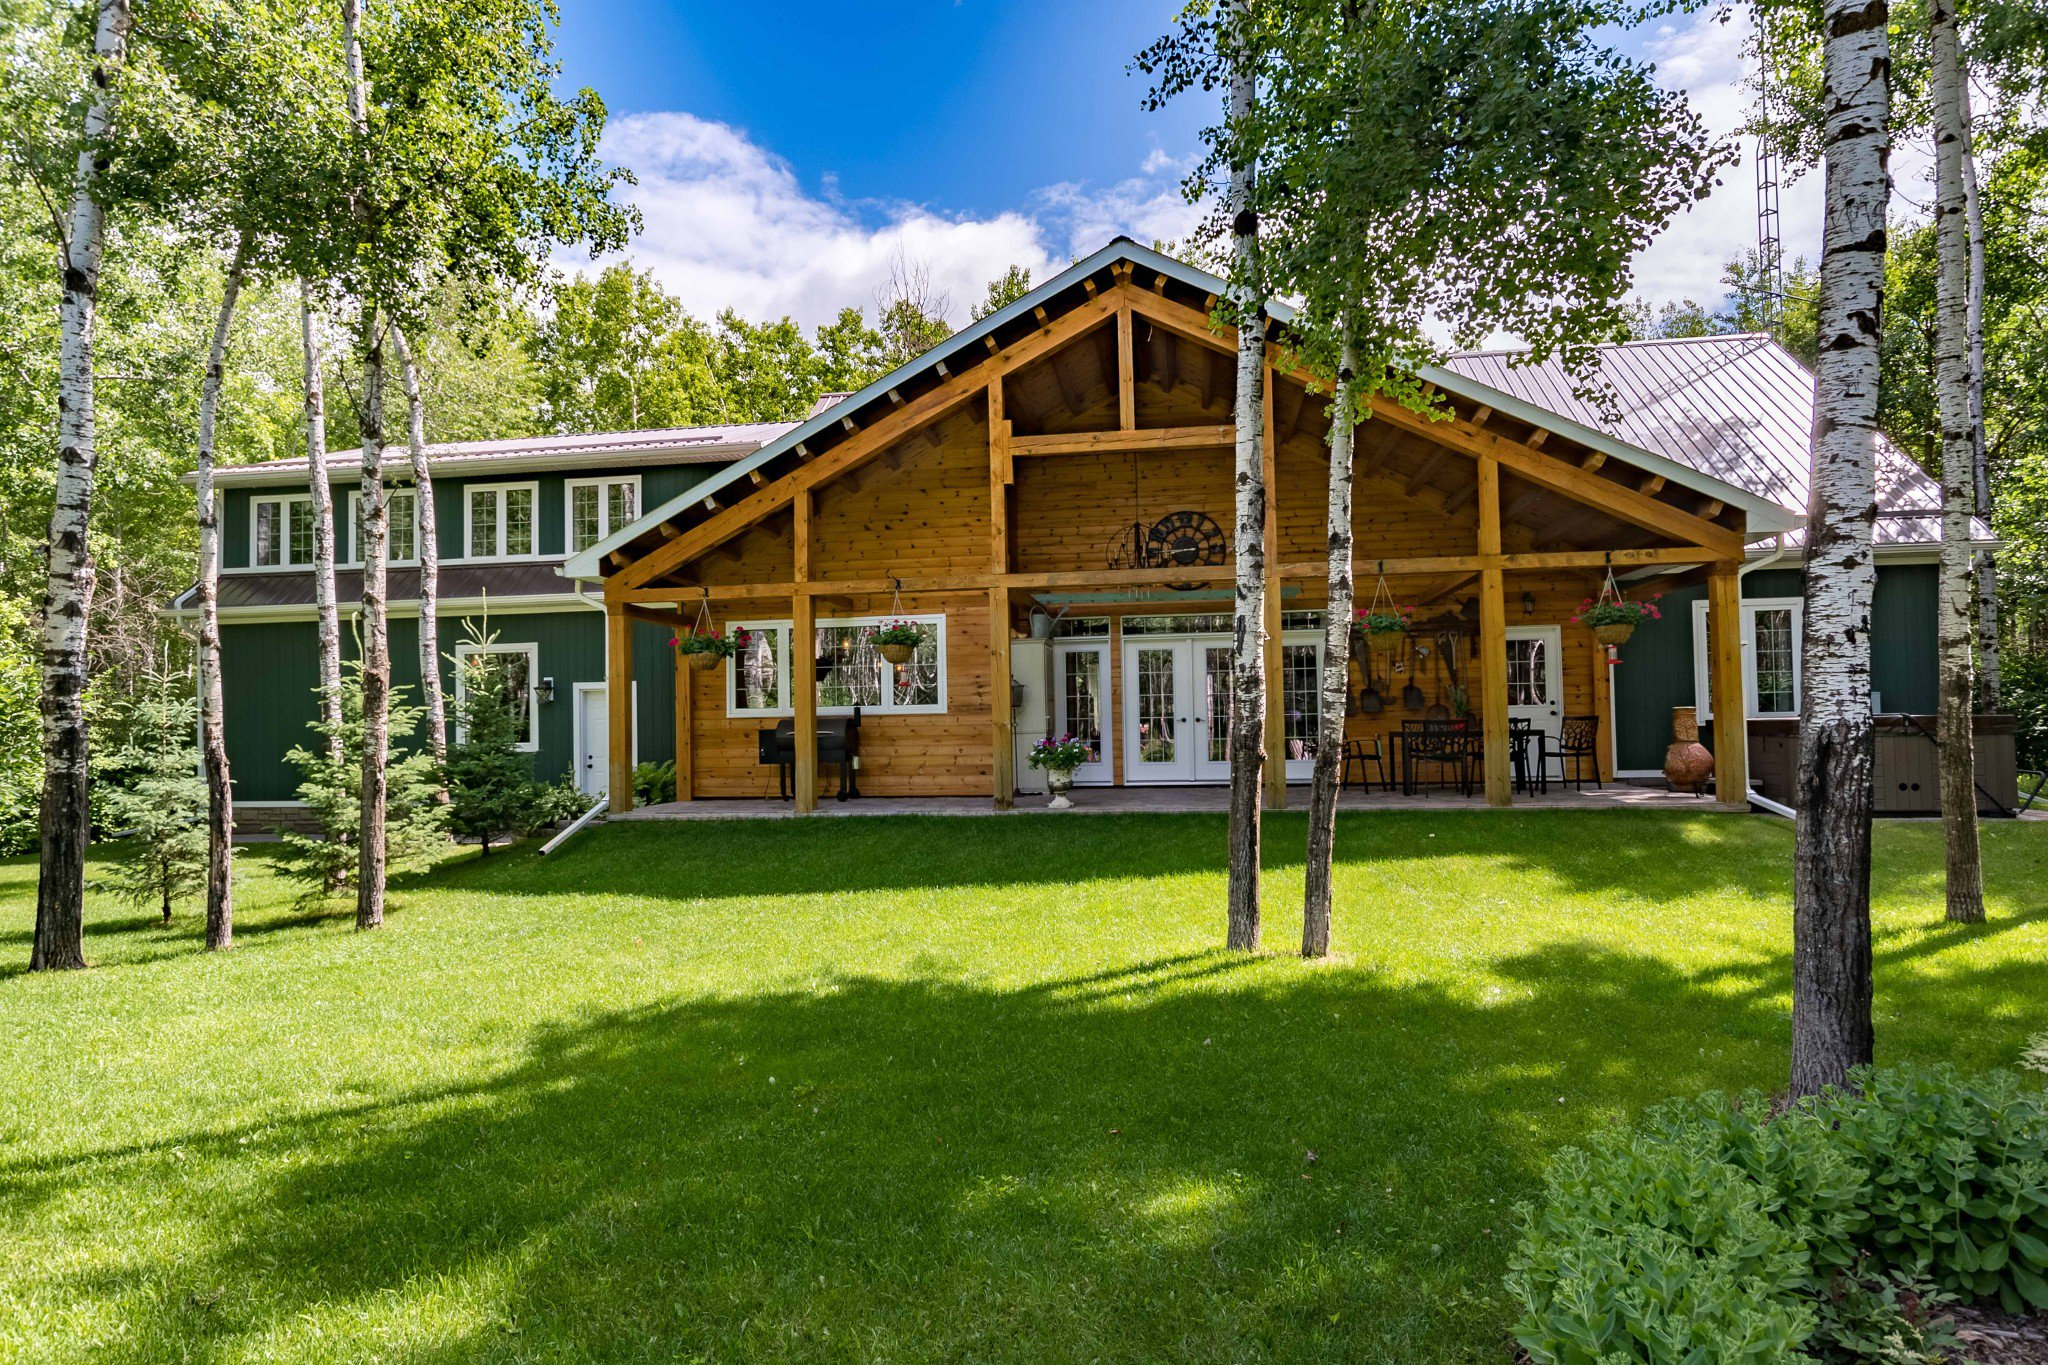 PRIDE OF OWNERSHIP! Meticulously maintained 2500 sf 3 bedroom bungalow (2011), with metal roof, vaulted timber frame covered 40x12 patio, 25x24 AT2, fantastic 40x36 Workshop on a beautifully  landscaped mature treed 5 acre lot.